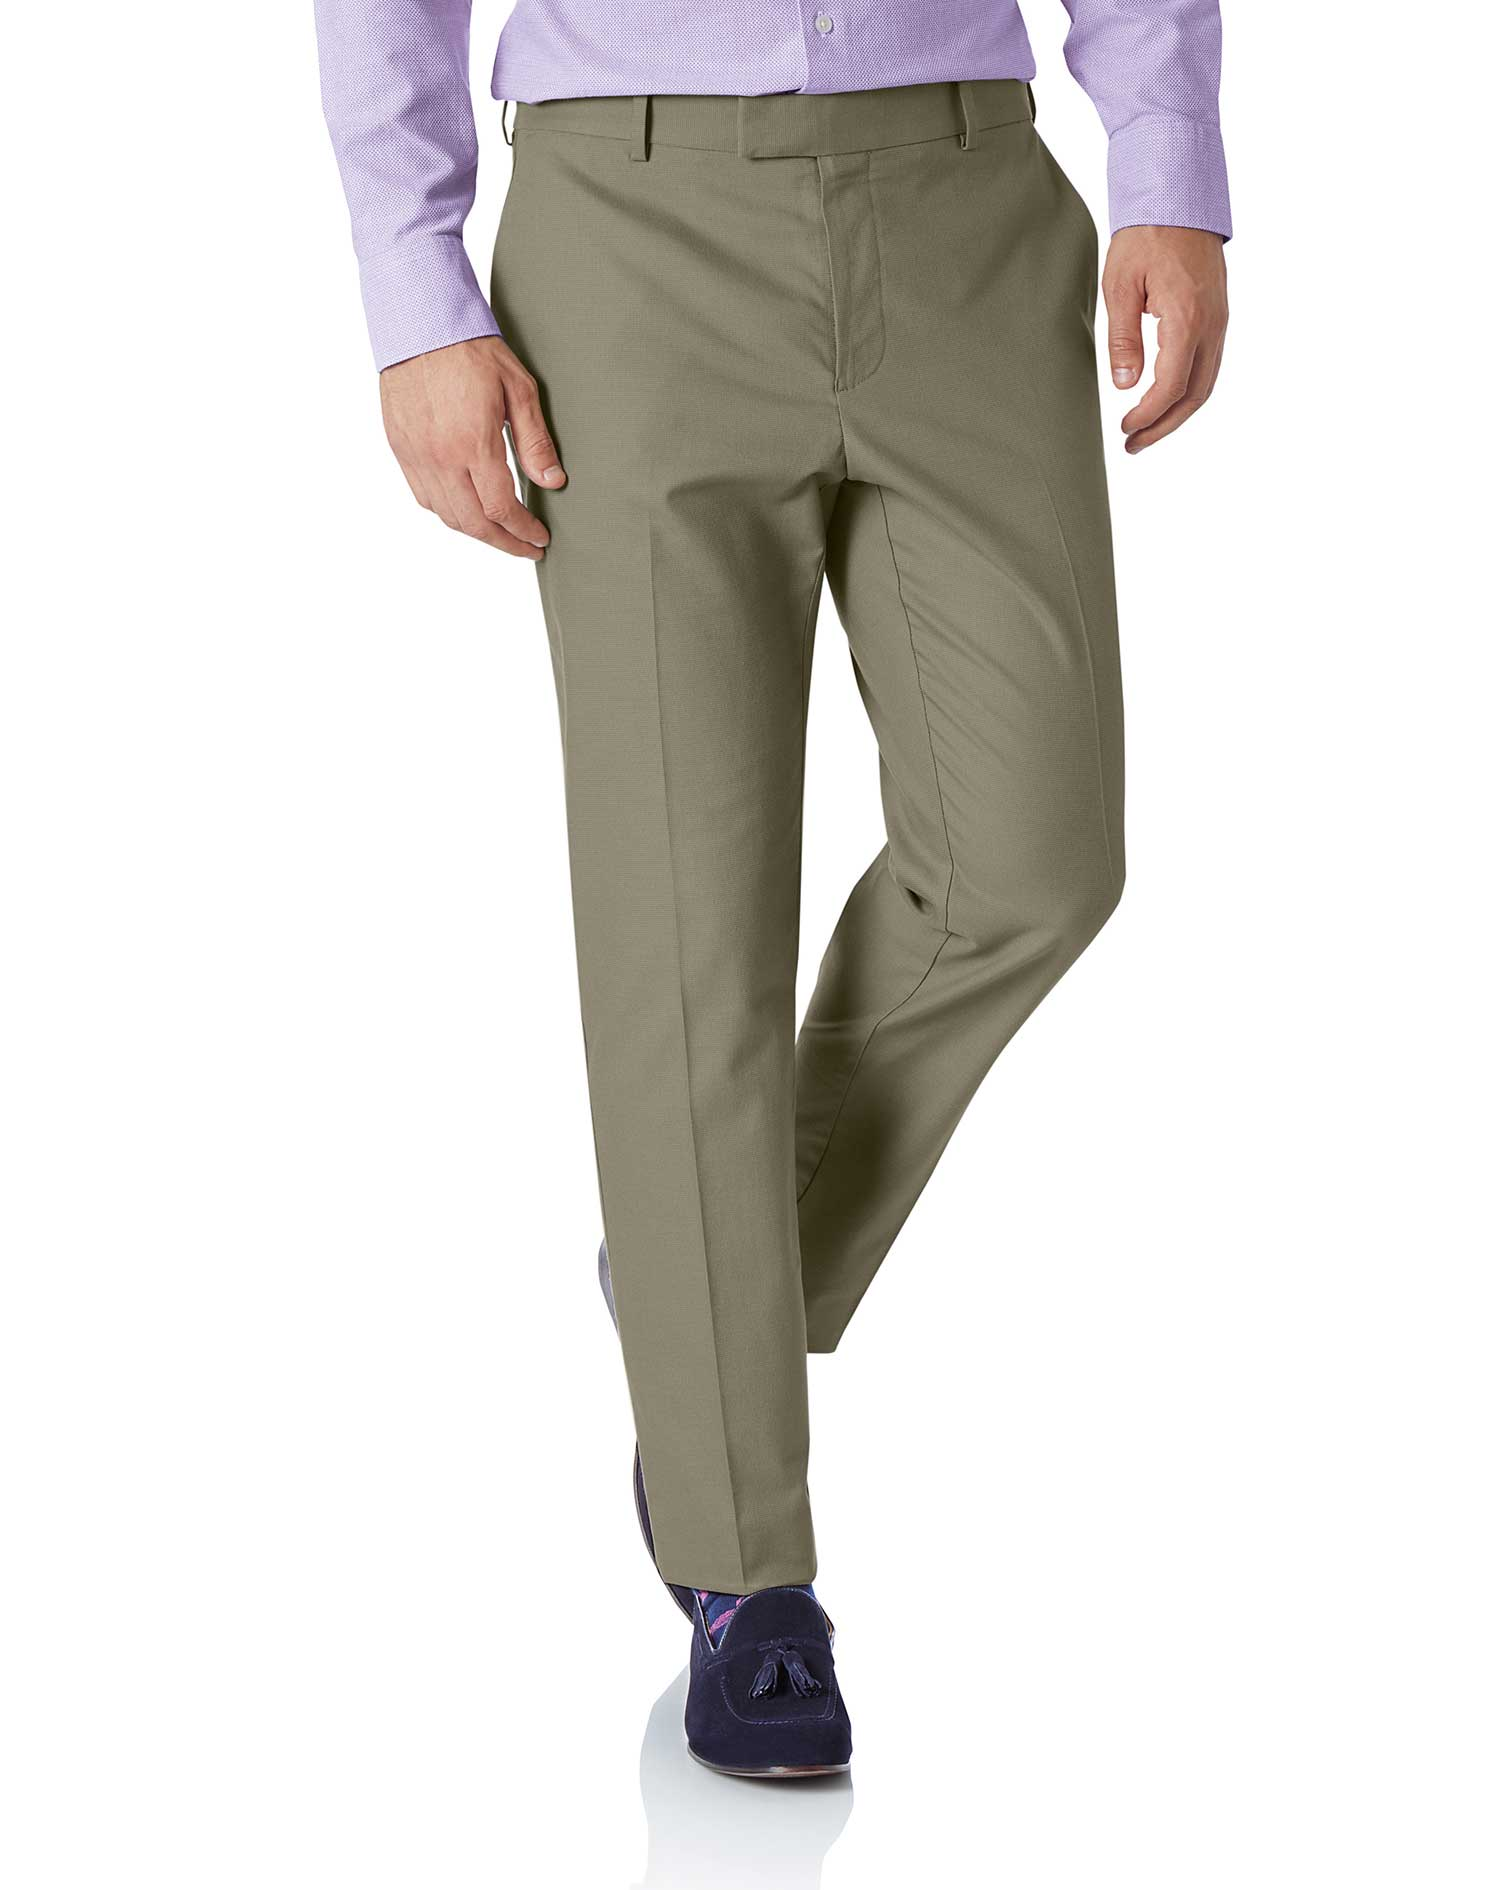 Olive Extra Slim Fit Stretch Non-Iron Trousers Size W32 L30 by Charles Tyrwhitt